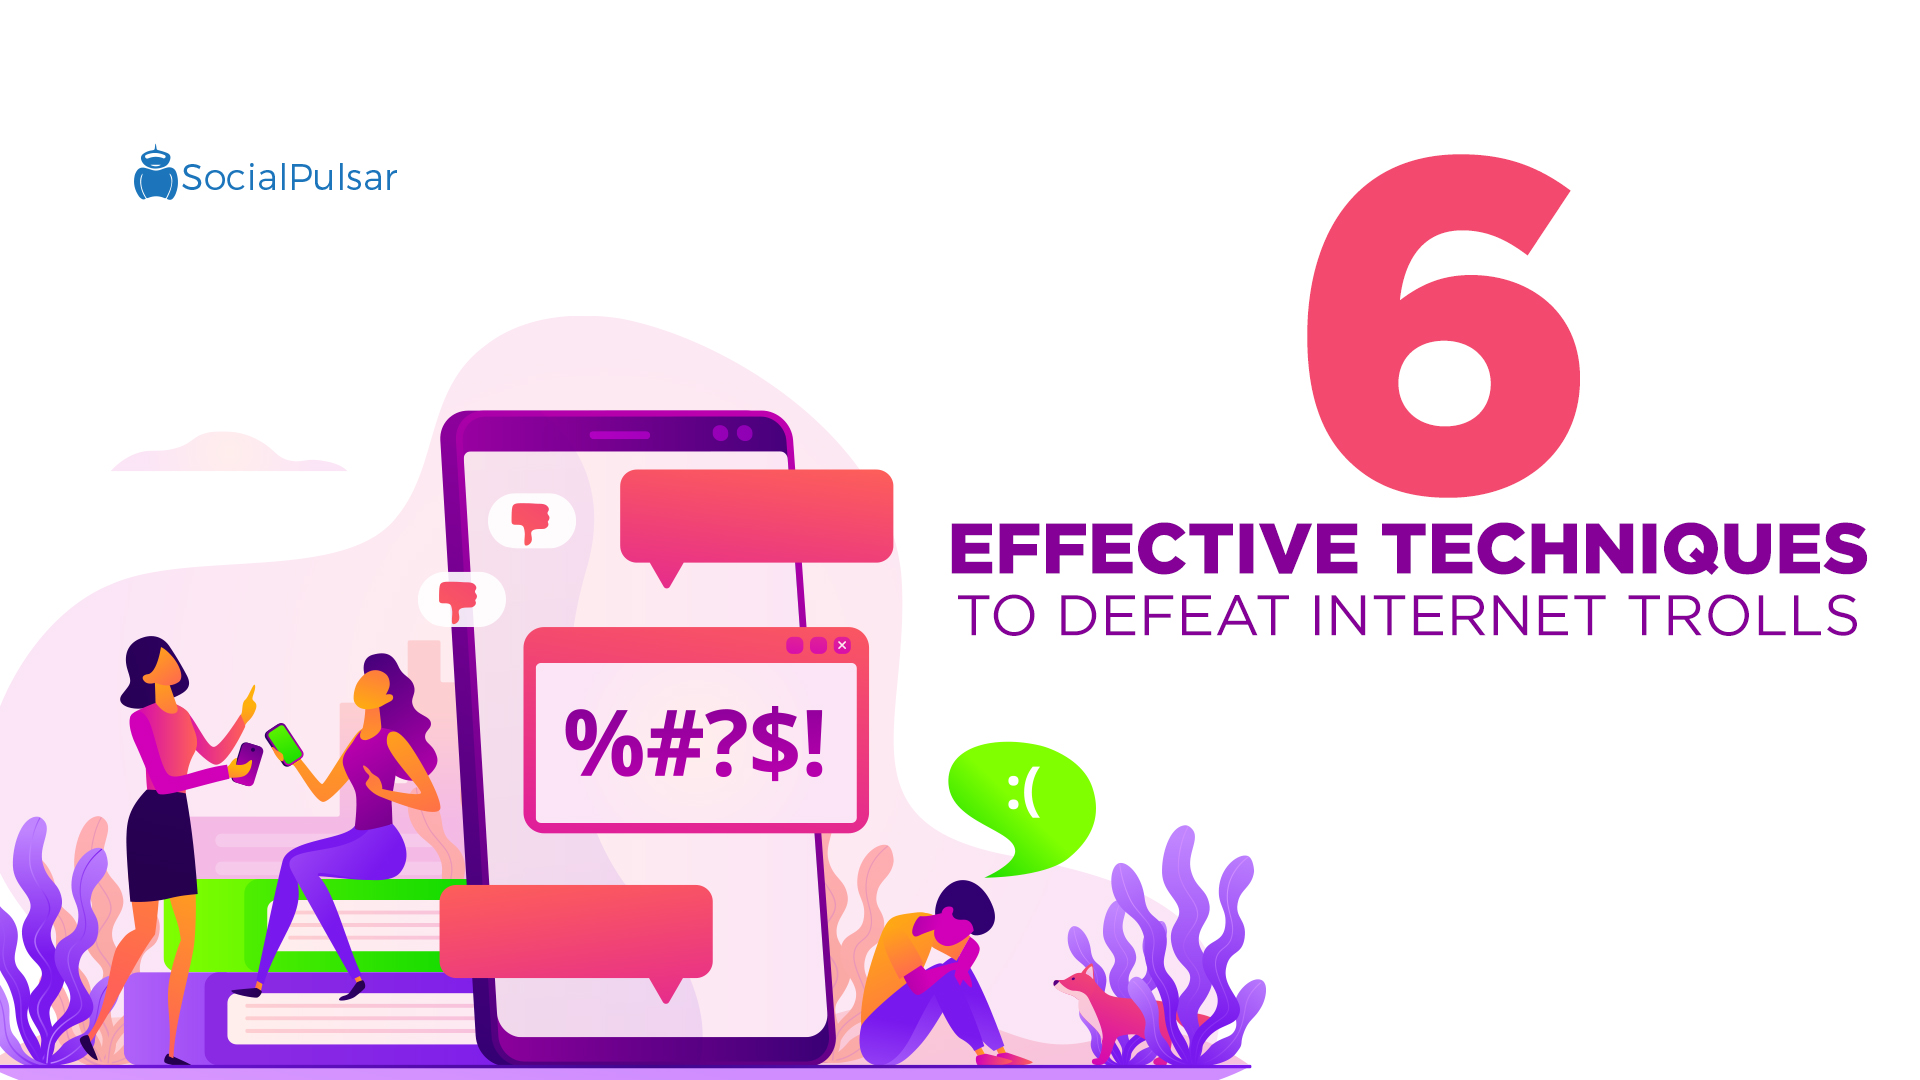 6 Effective Techniques to Defeat Internet Trolls